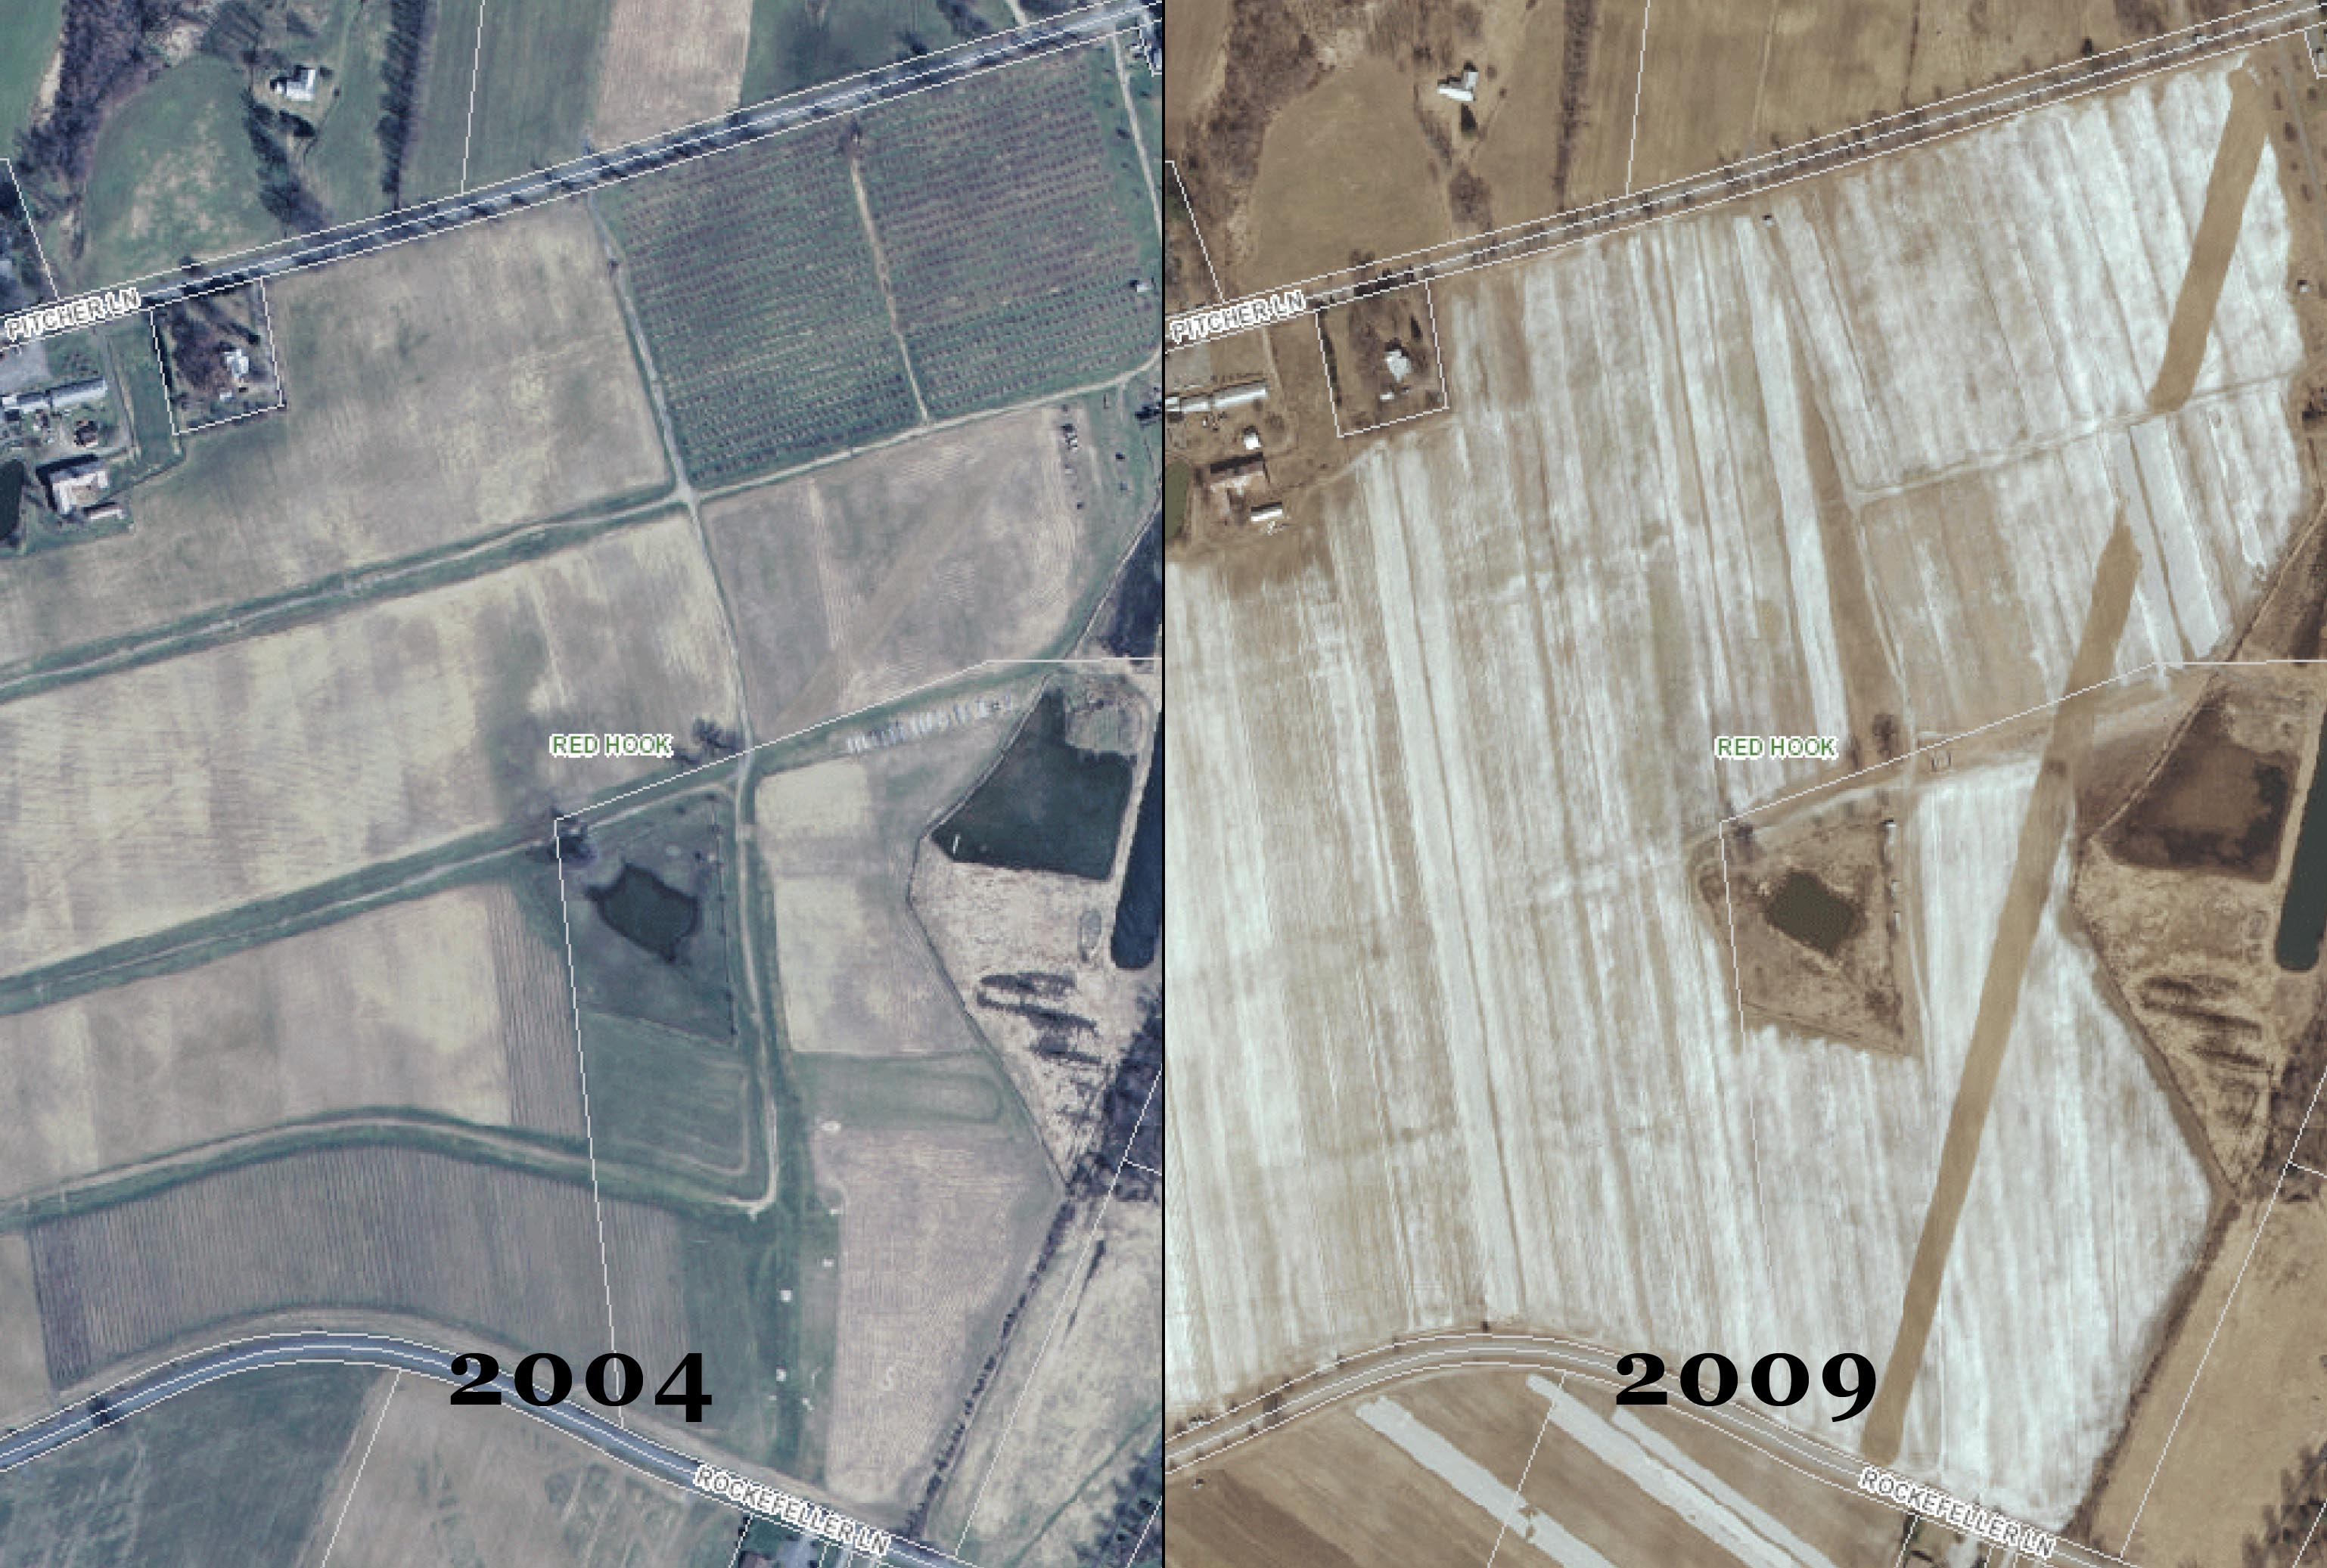 County aerial photos show crops growing in 2004 where airstrip exists in 2009 and today. However, Mr. Greig has stated the airstrip has not always been in the same place on the farm.